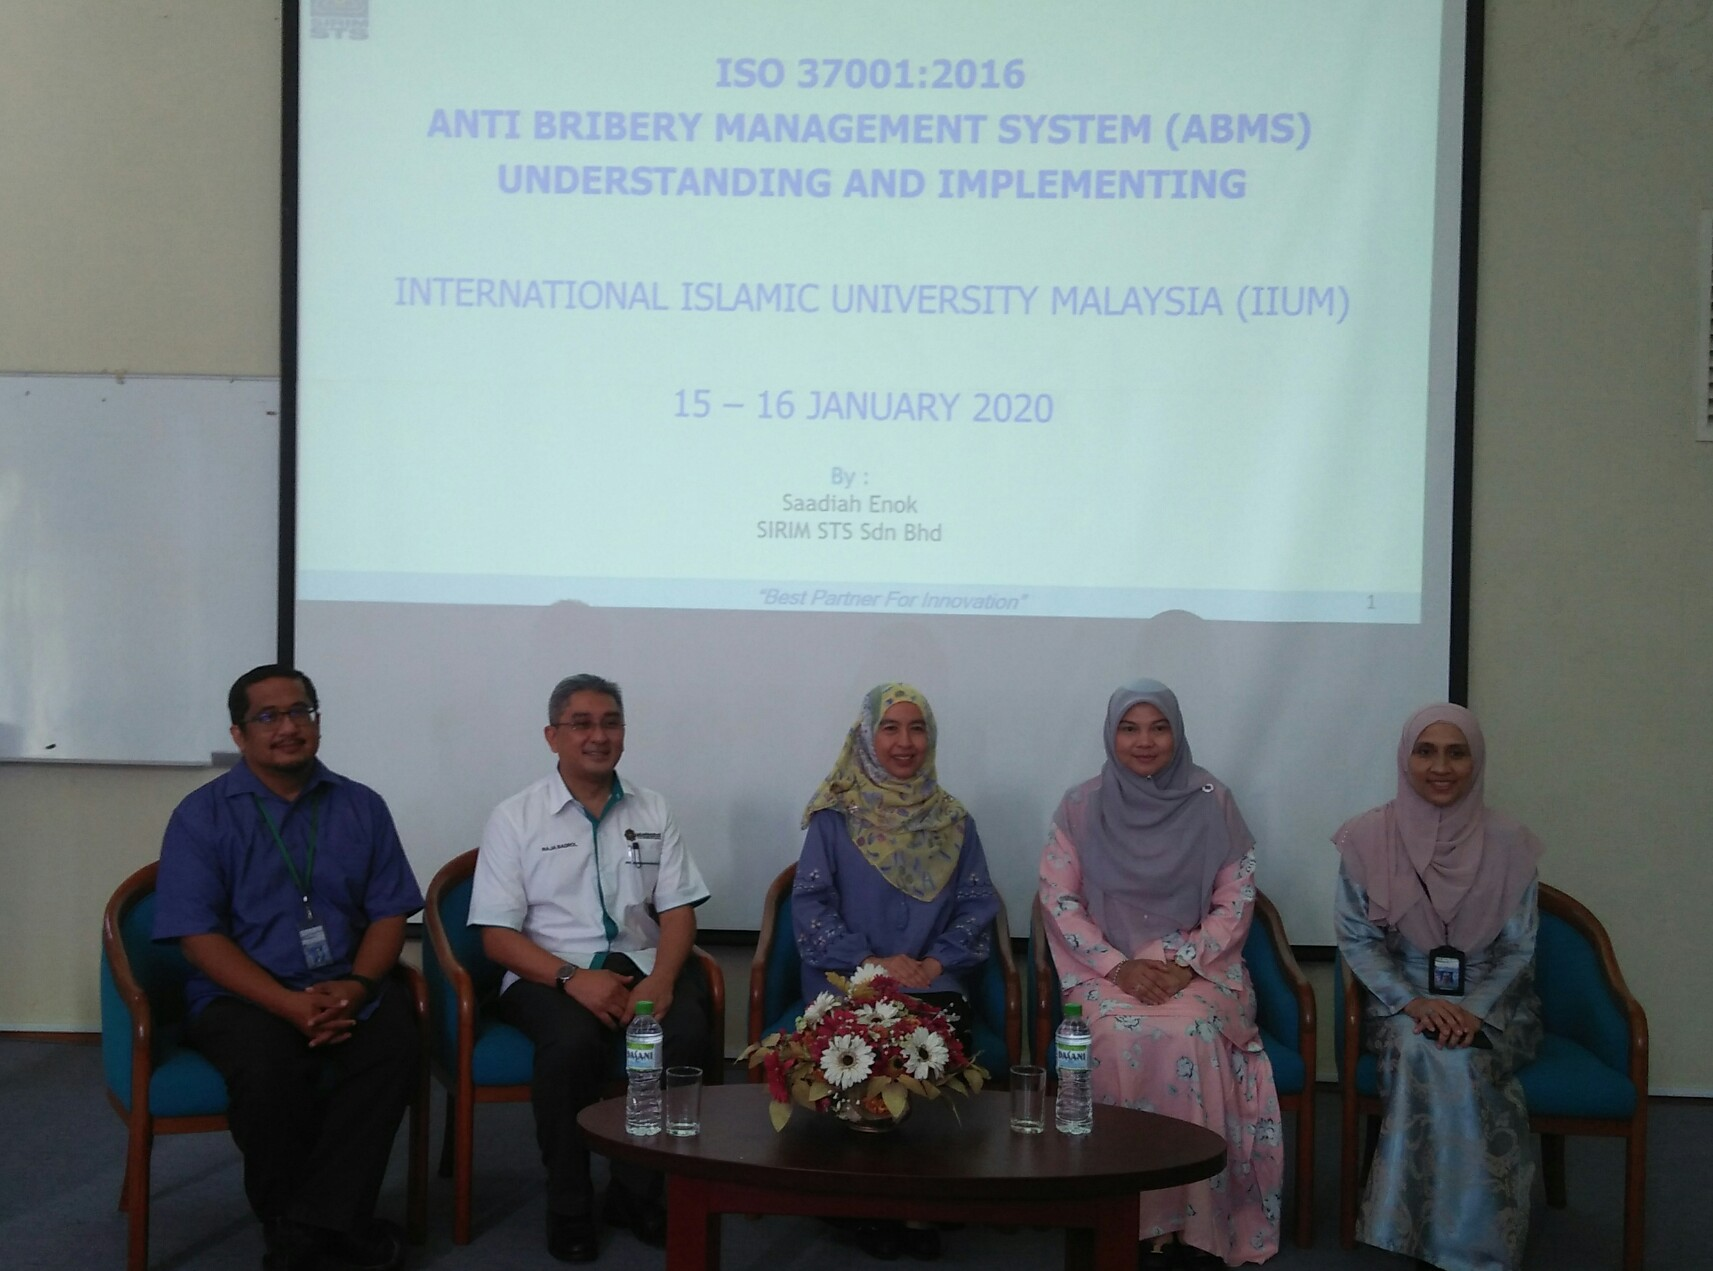 TRAINING ON ISO 37001 ANTI-BRIBERY MANAGEMENT SYSTEM (ABMS)